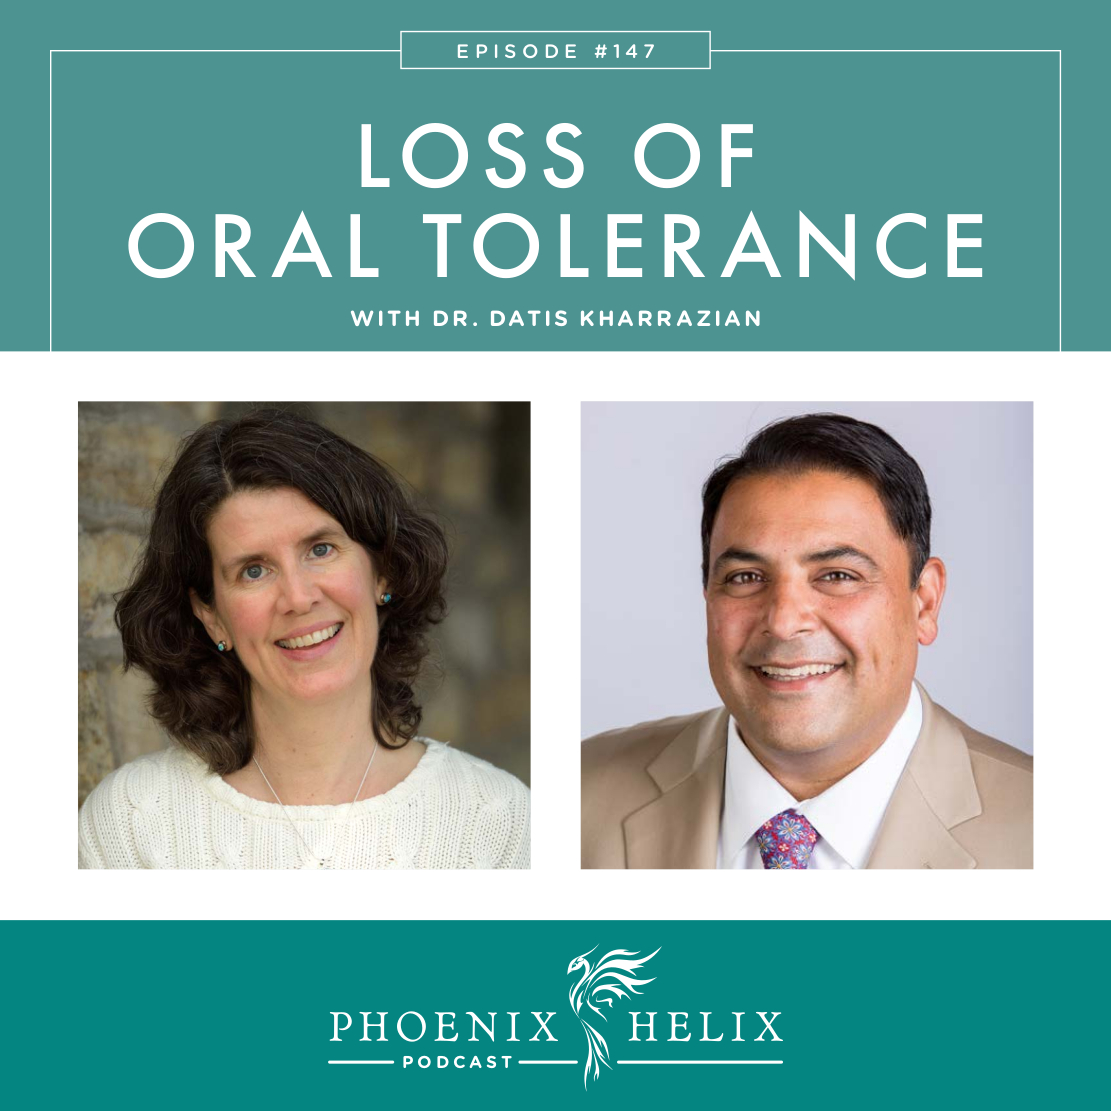 Loss of Oral Tolerance with Dr. Datis Kharrazian | Phoenix Helix Podcast